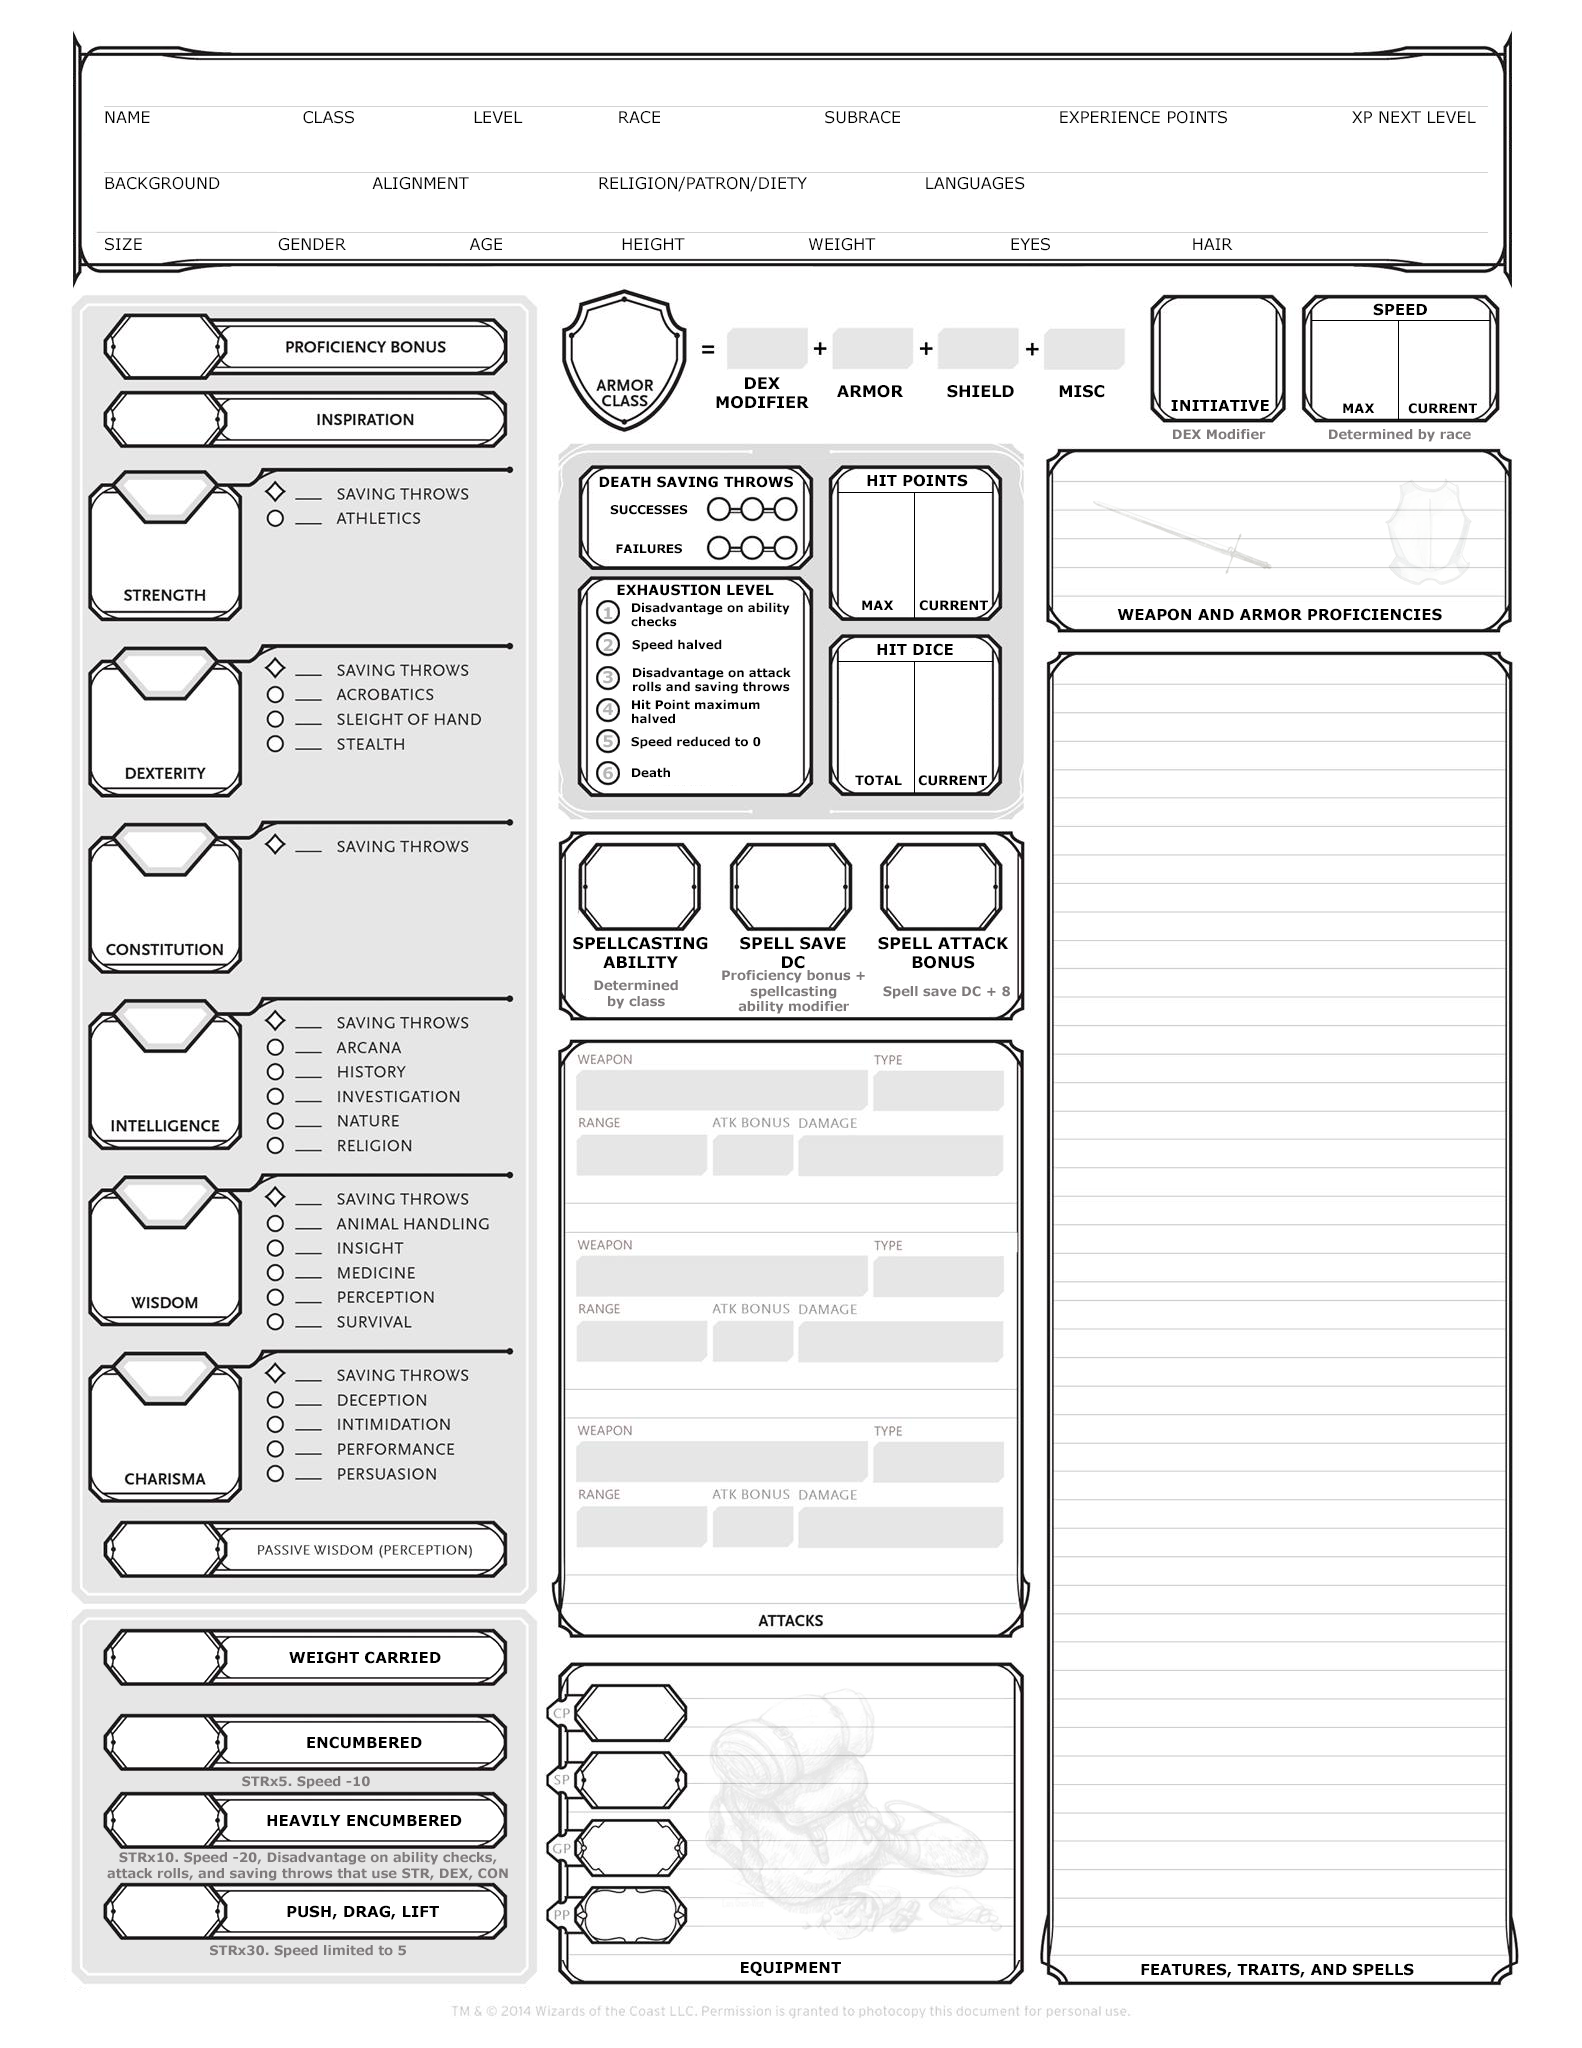 Basic Character Sheet Aimed At New Players Broken Down A